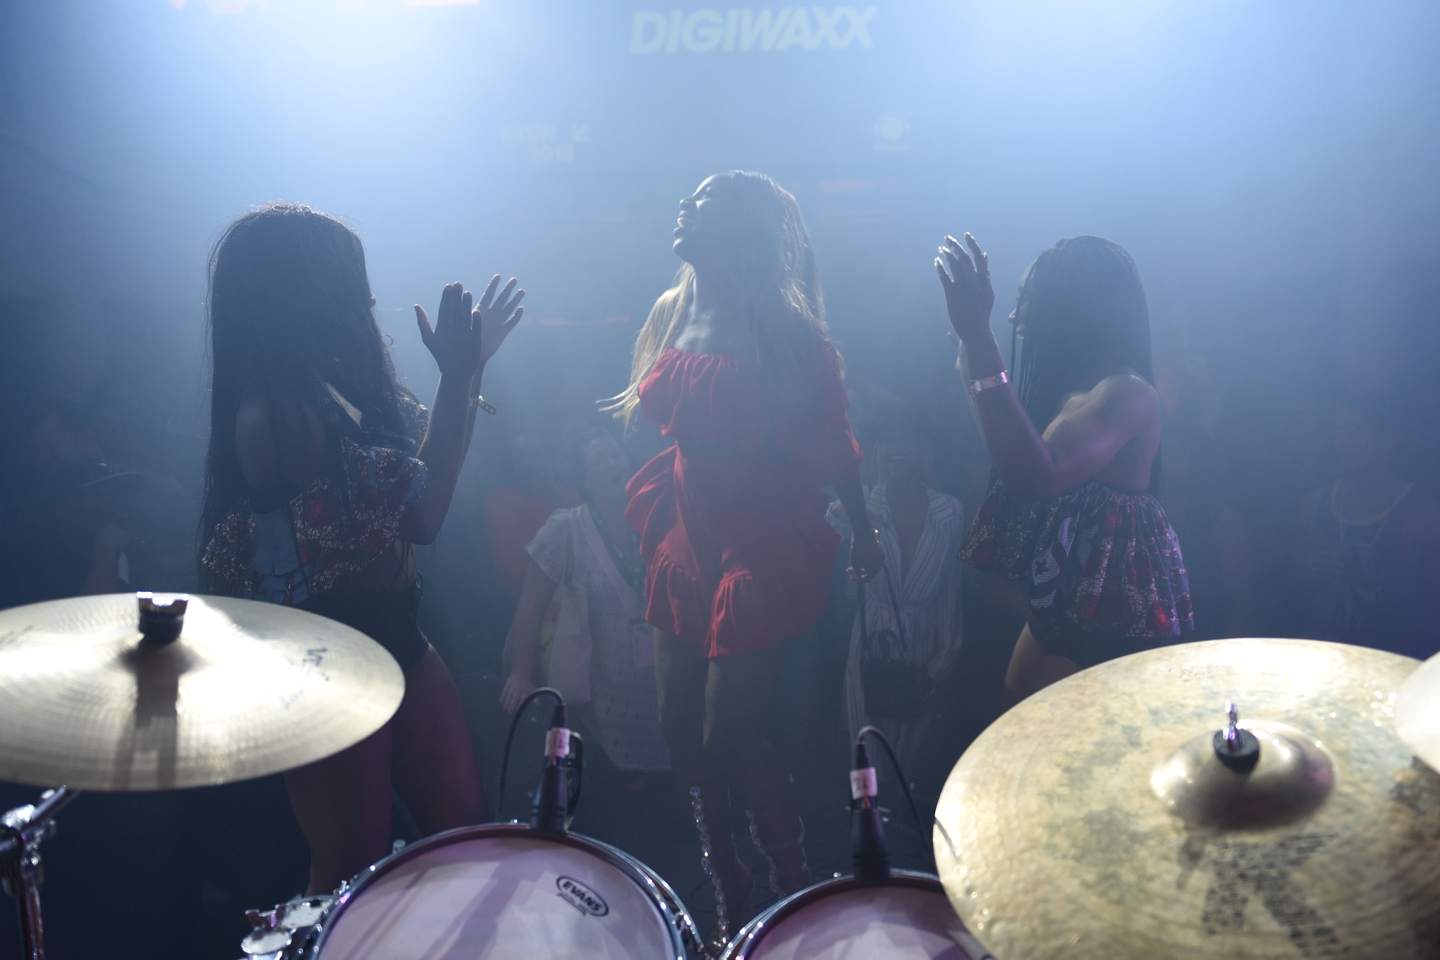 Seyi Shay, presented by Digiwaxx. Photo by Melanie DeMartinis